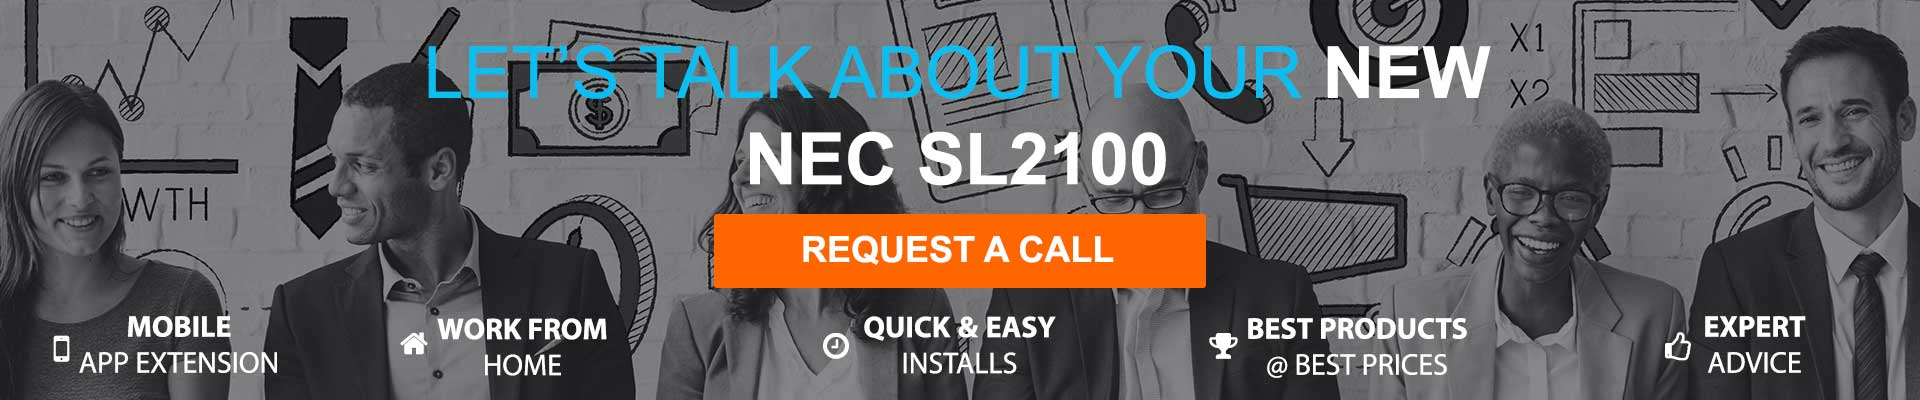 Buy an NEC SL2100 communications system - request a call